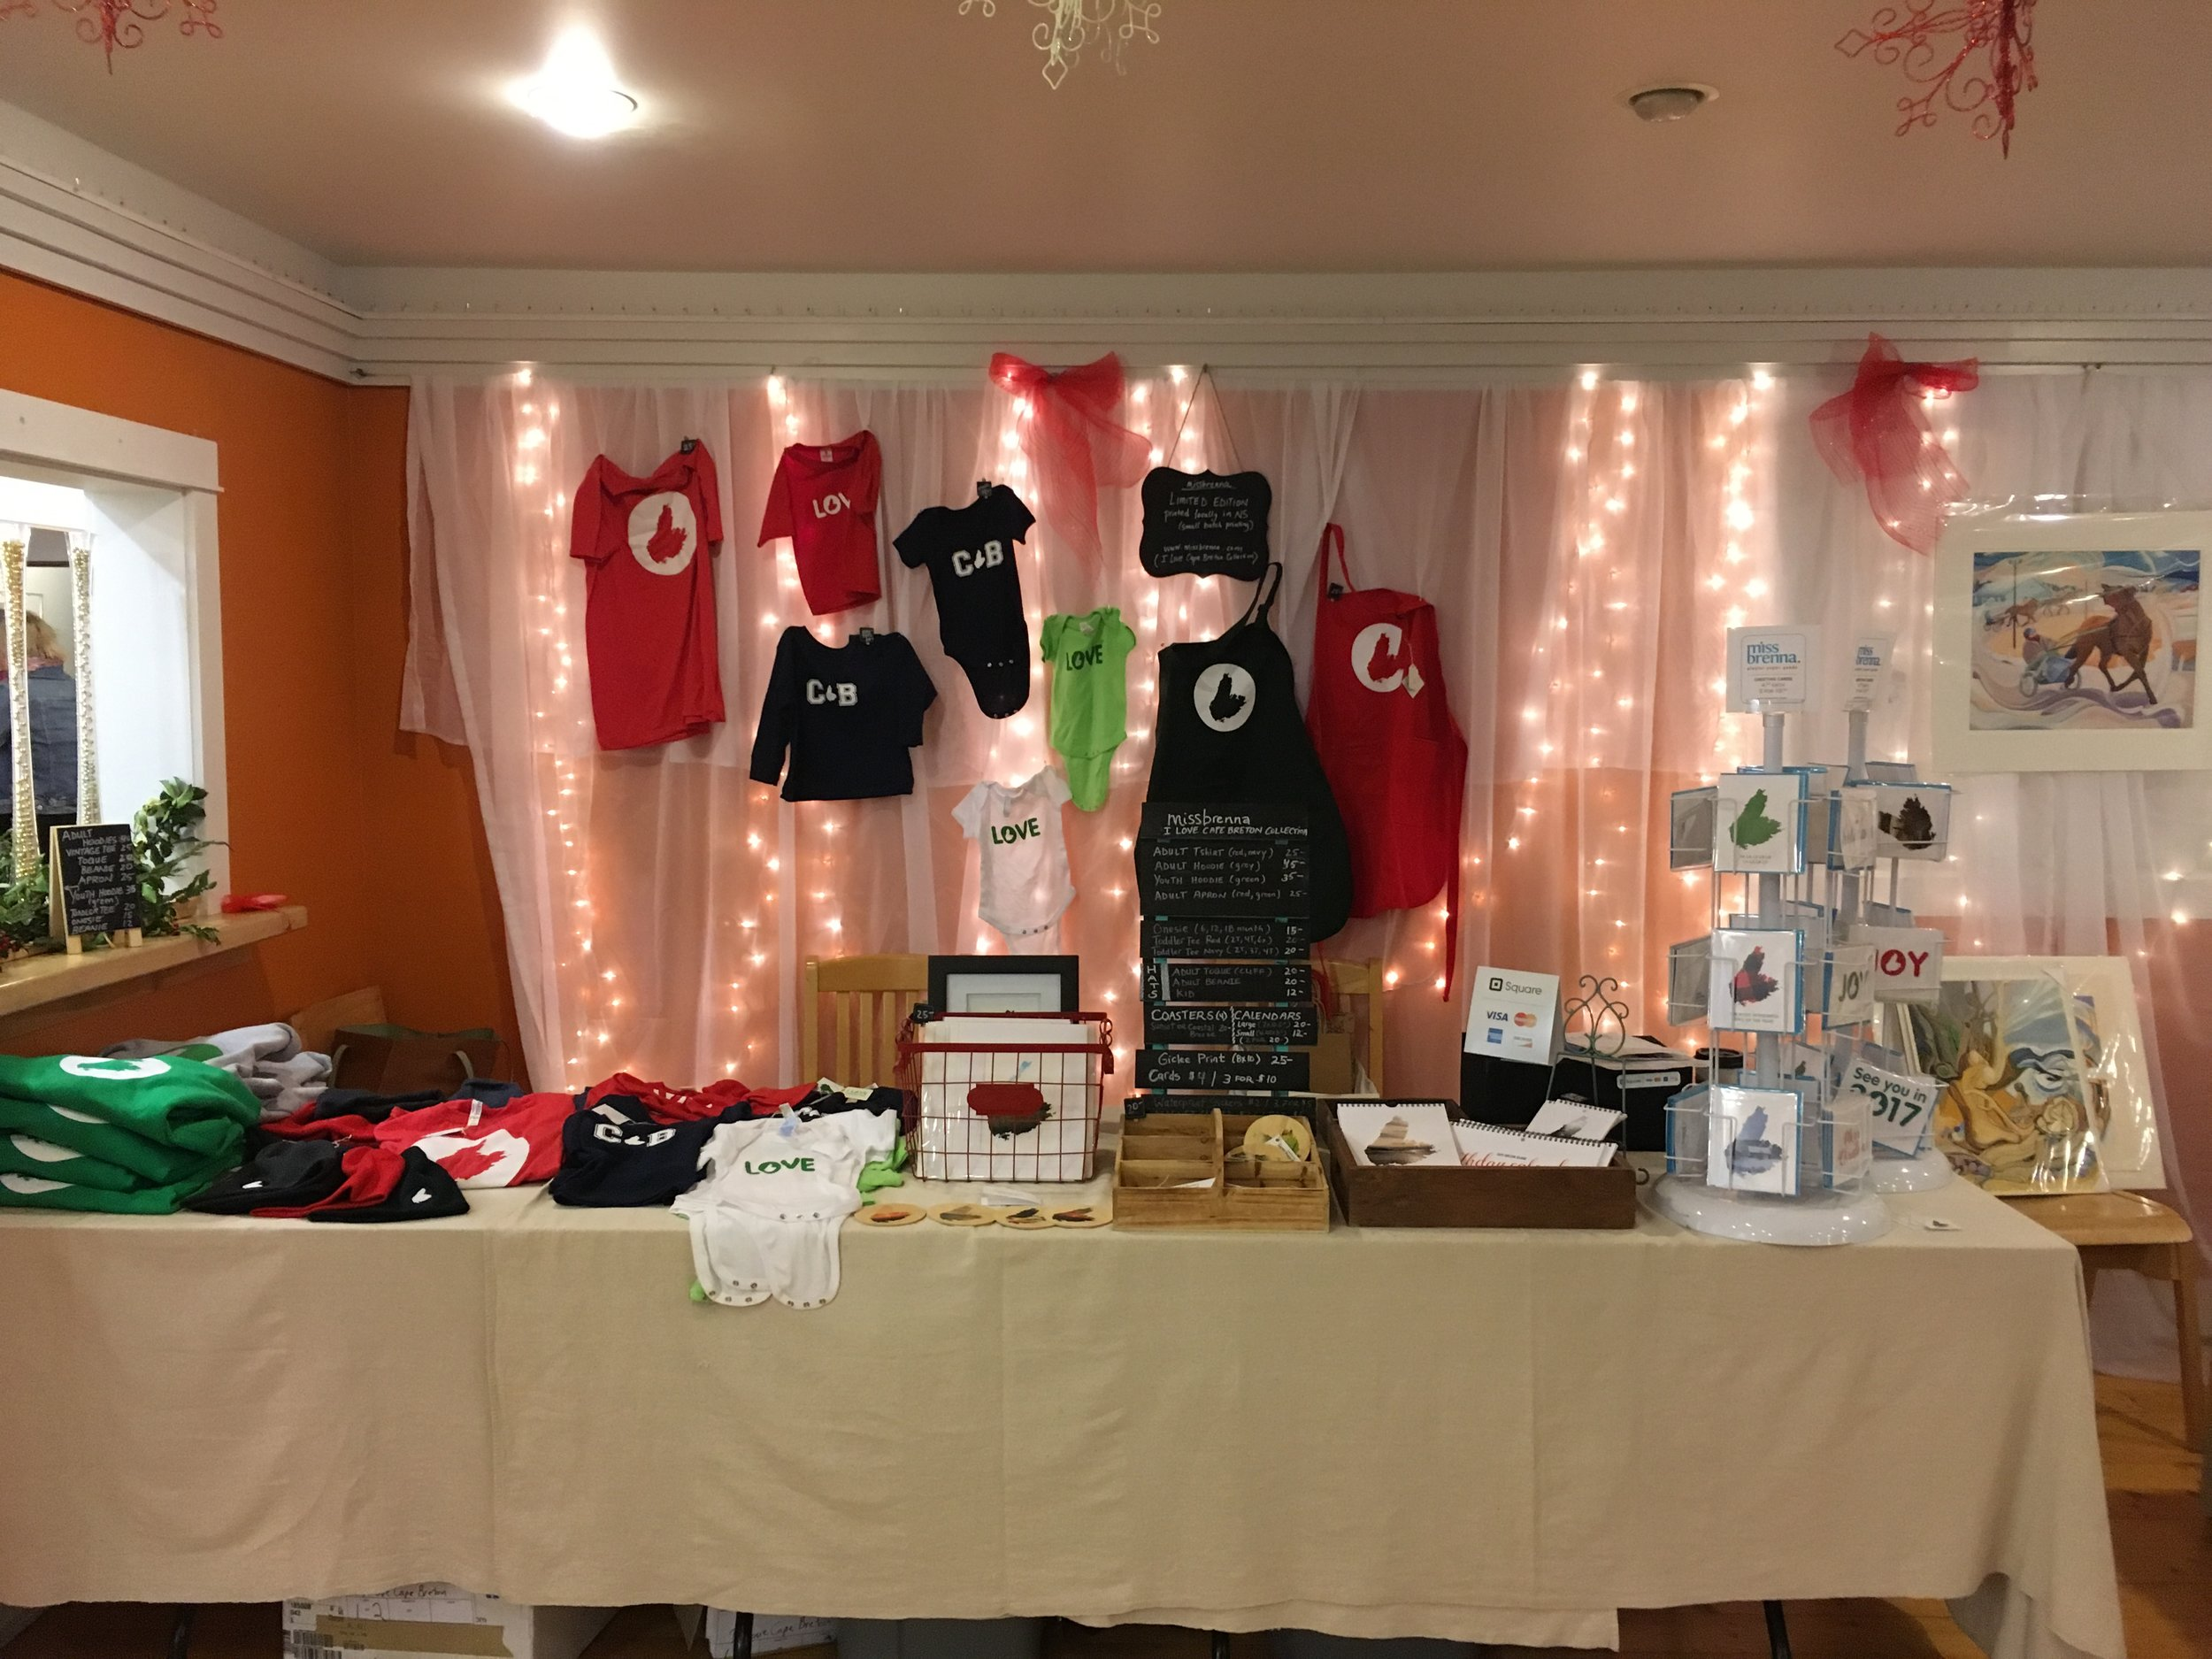 Elves' Fair set up at the Arts Centre, November 27, 2016. I will have all of these items at the Mabou Christmas Market.